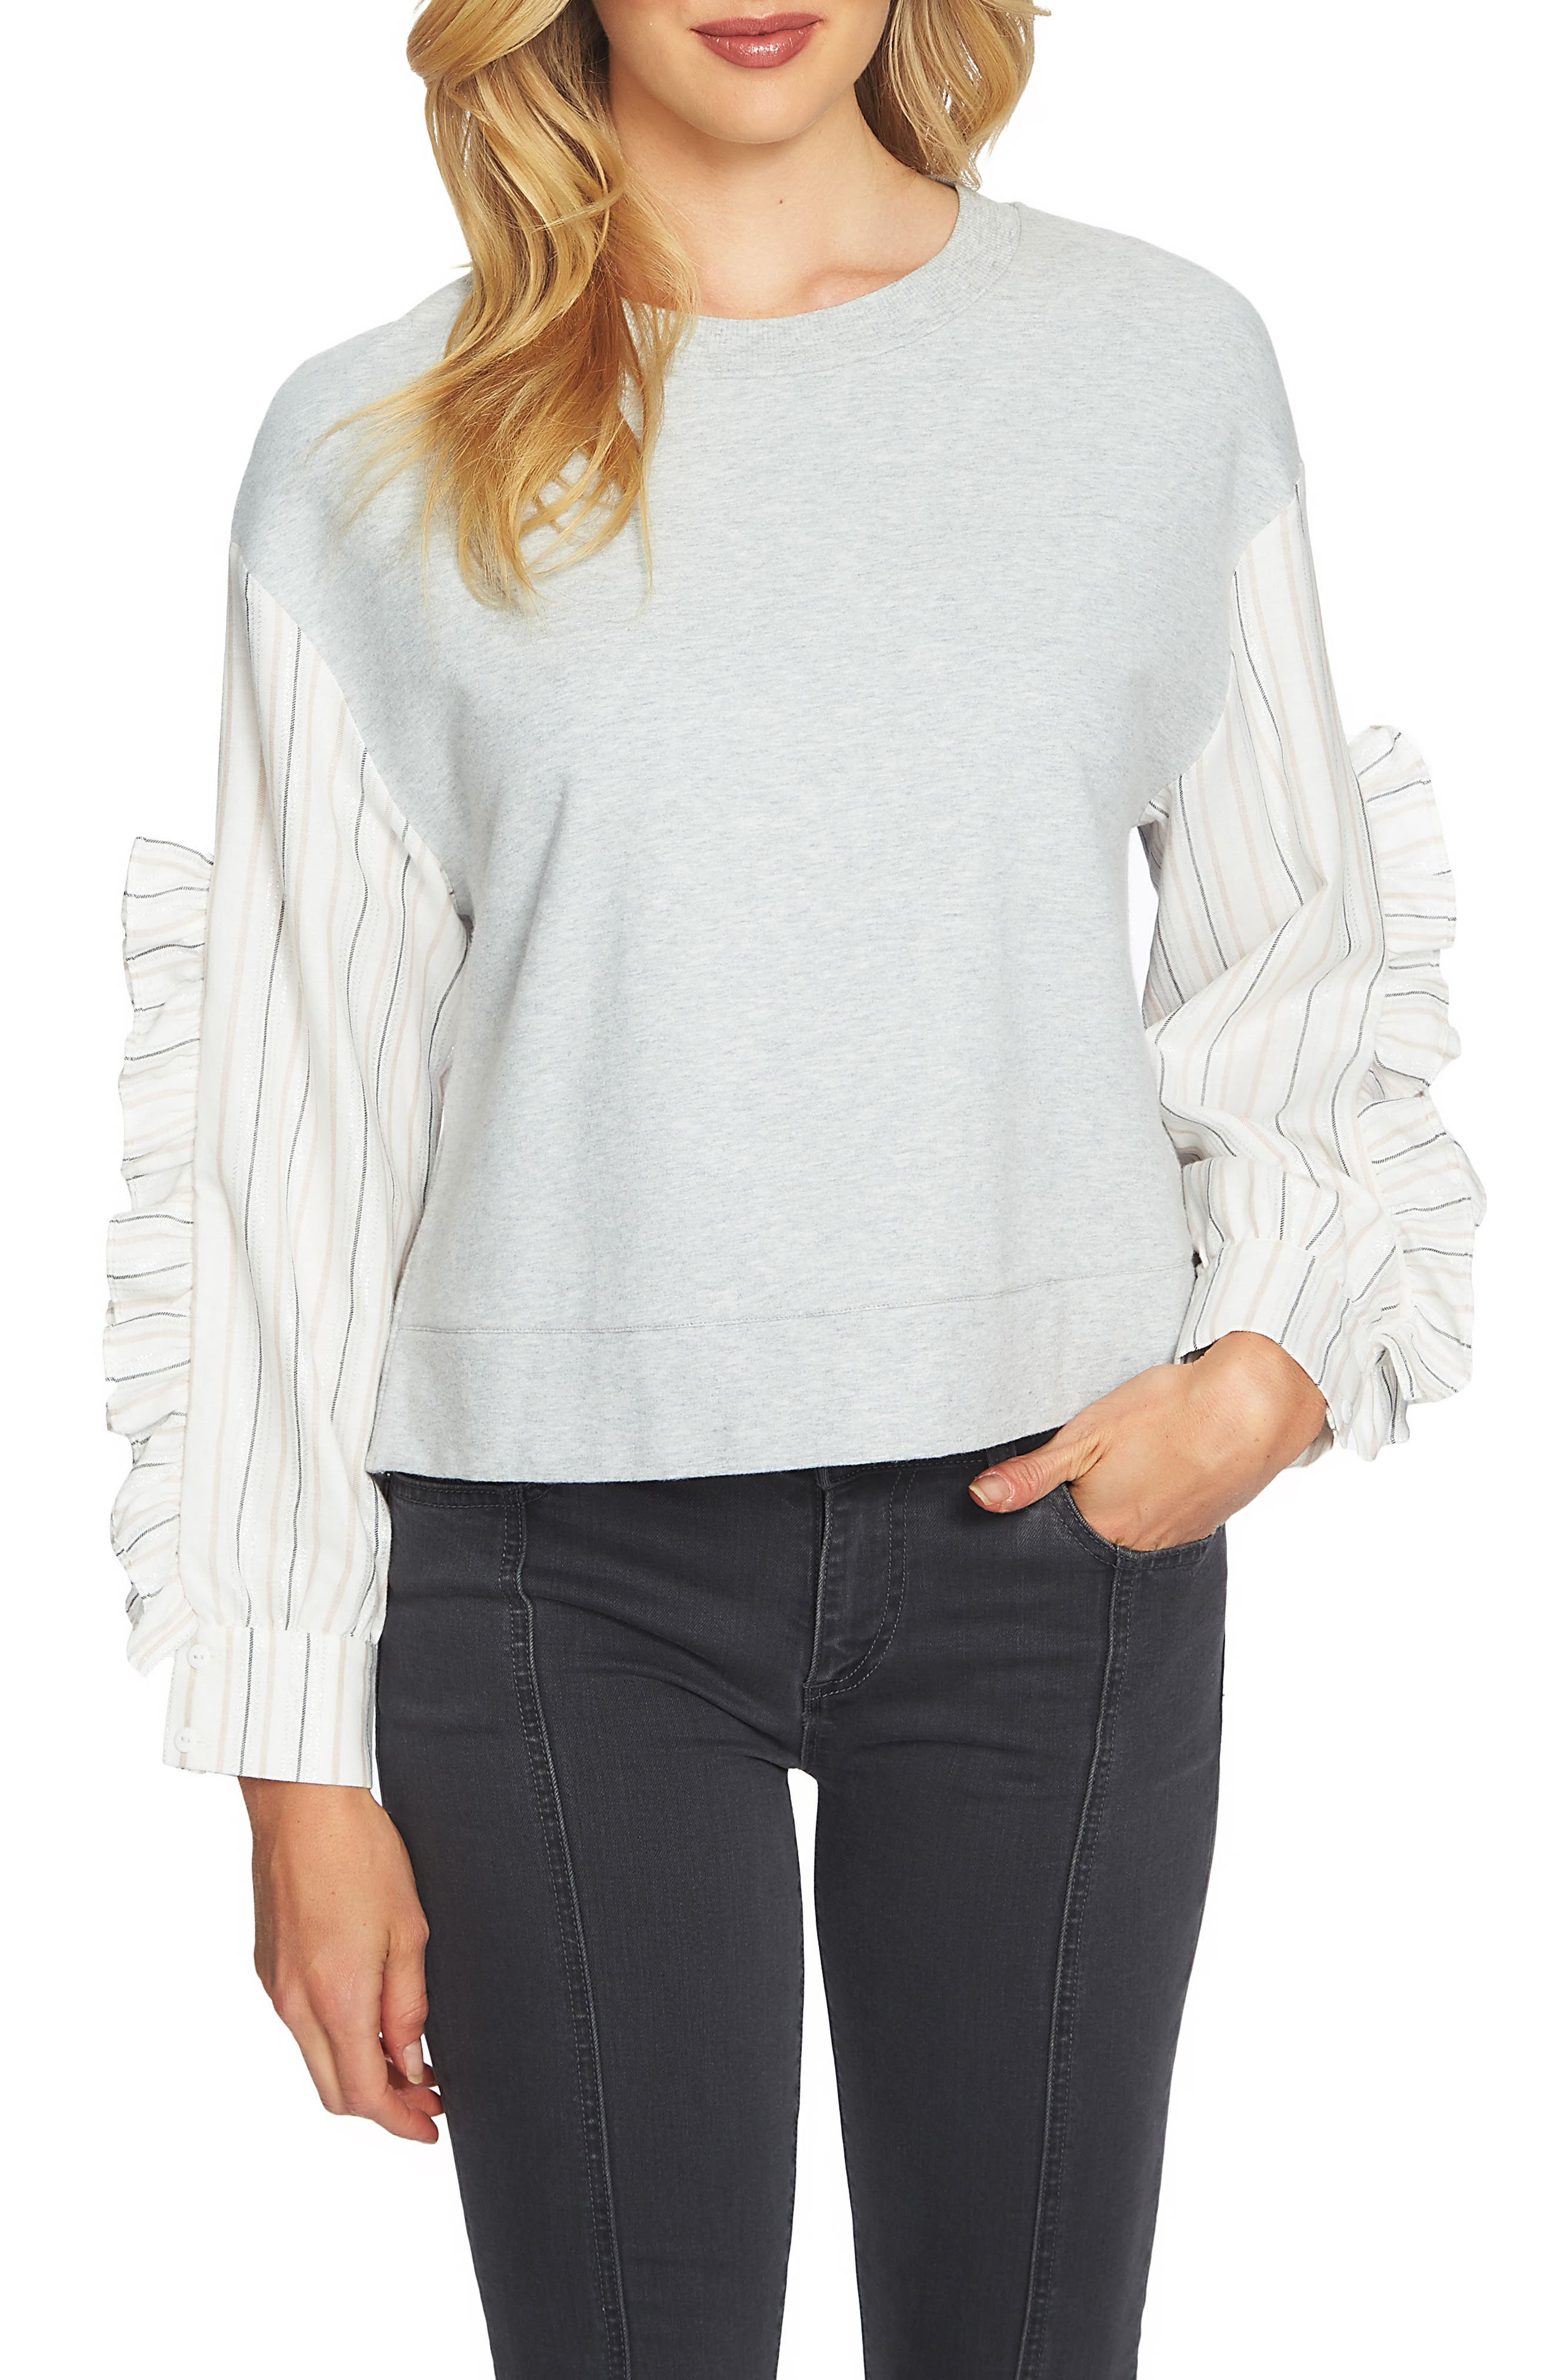 Alternate Image 1 Selected - 1.STATE Stripe Ruffle Sleeve Sweater